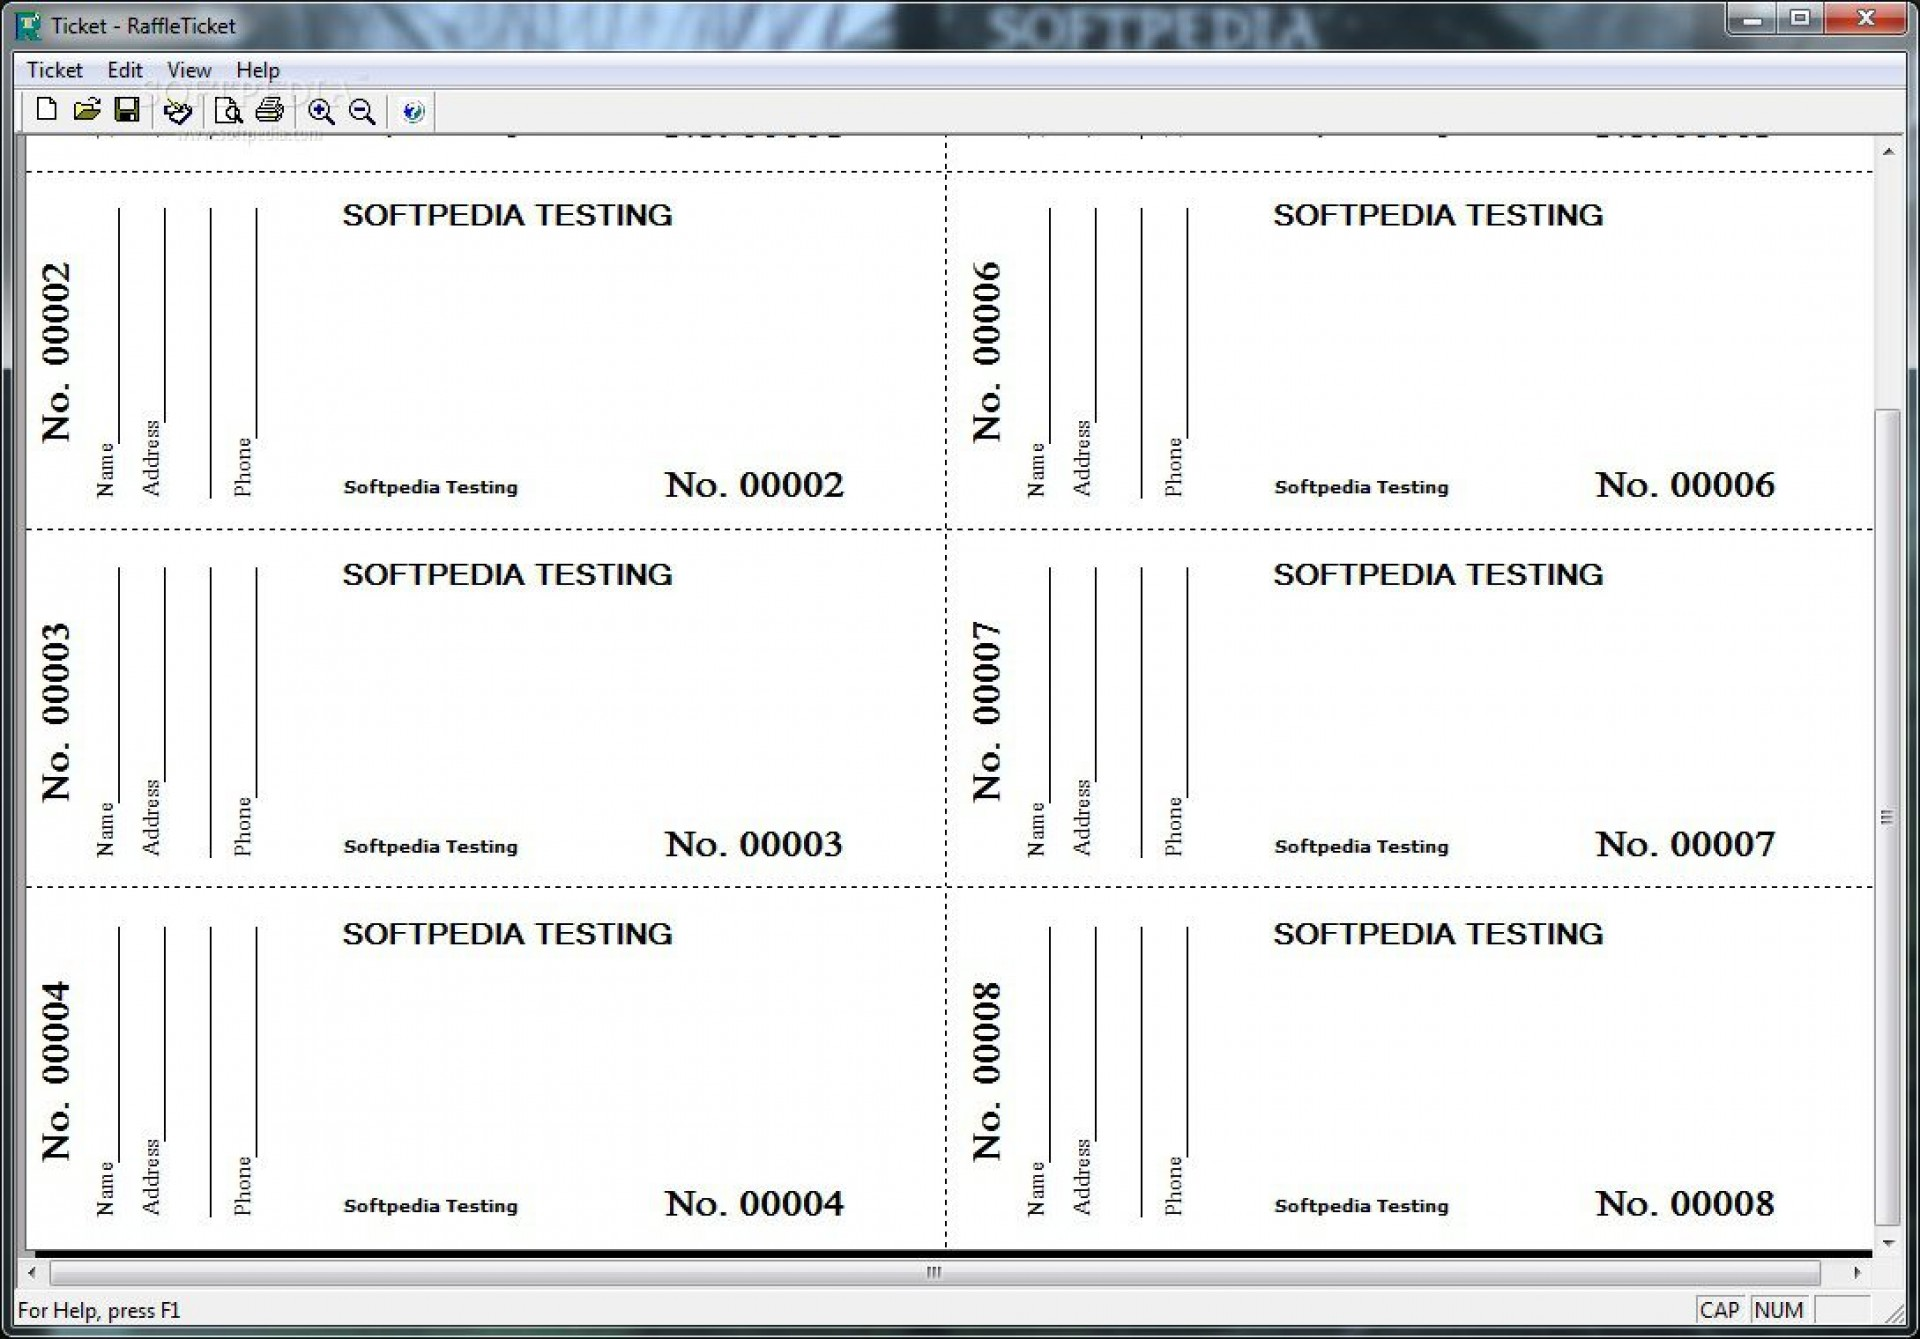 002 Incredible Printable Raffle Ticket Template Image  Free With Number Excel1920